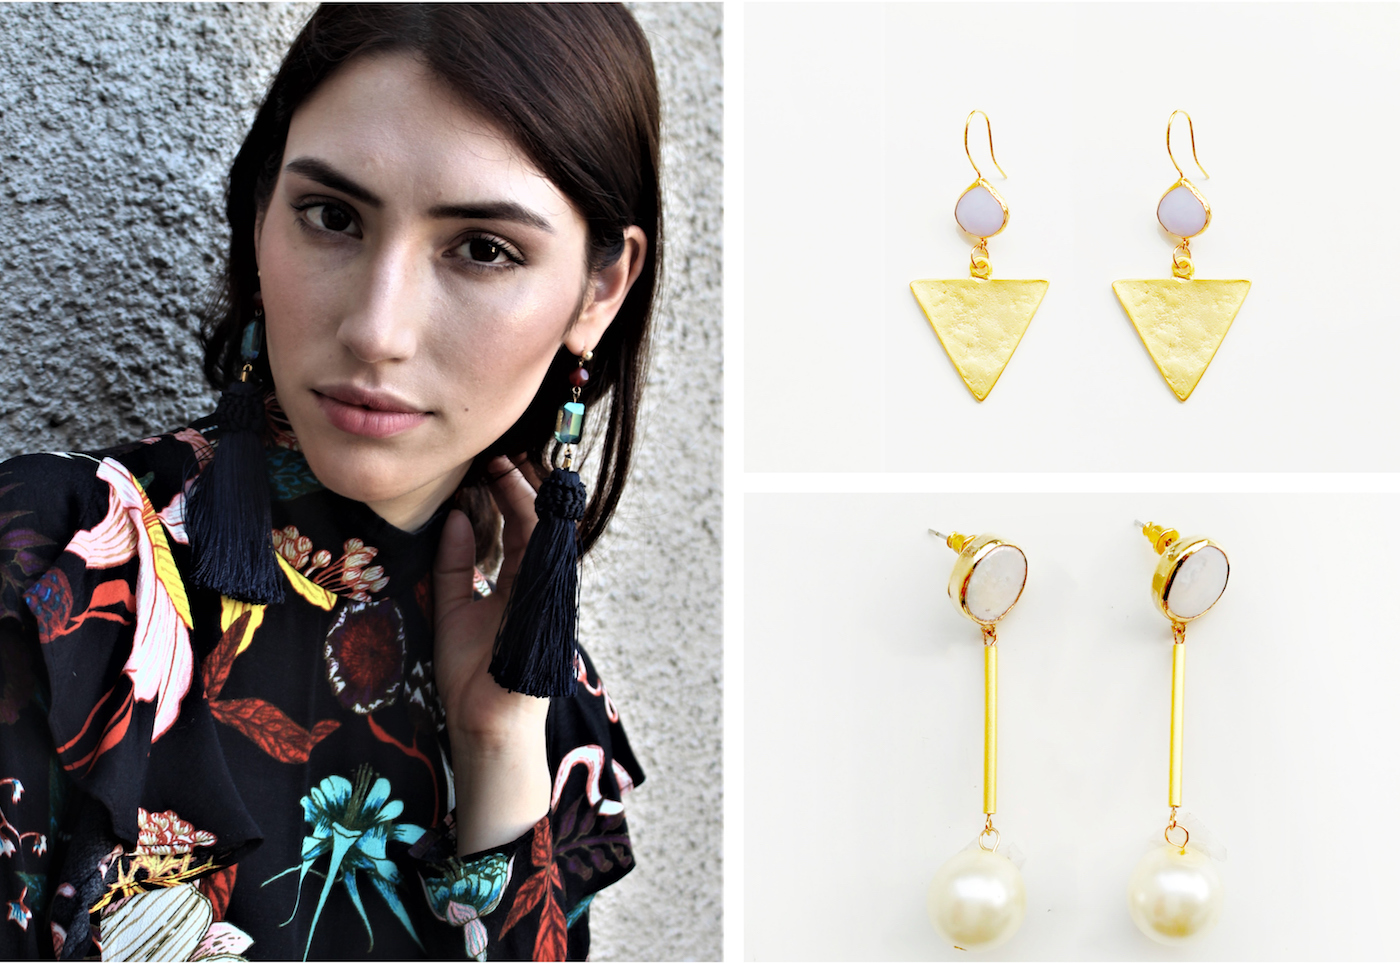 Boheme Style Nomads is a jewellery label that employs single mothers